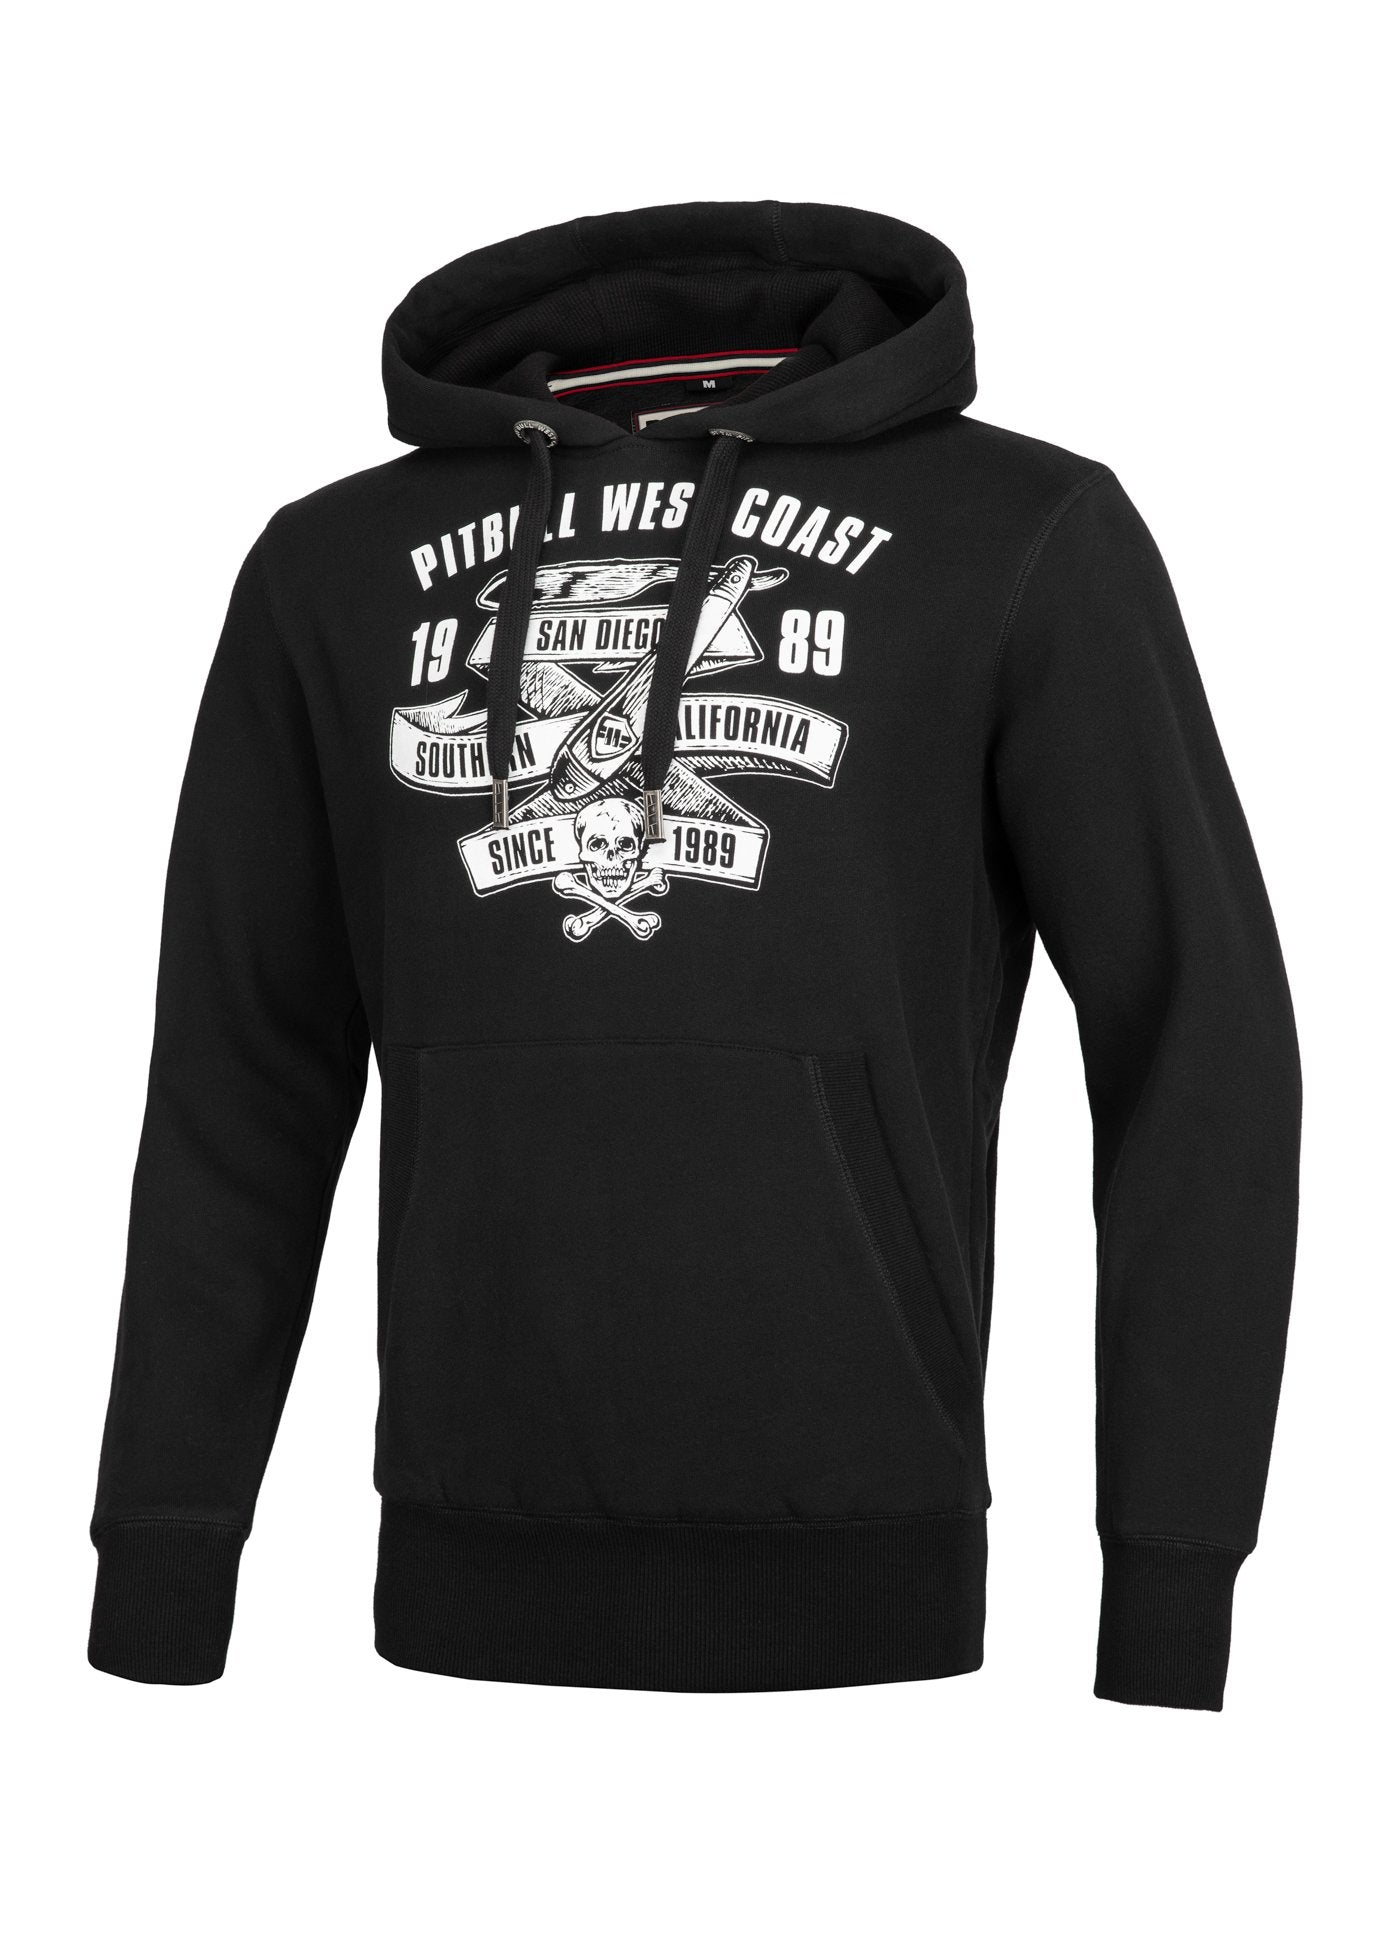 Hoodie OLDSCHOOL RAZOR Black - Pitbull West Coast  UK Store